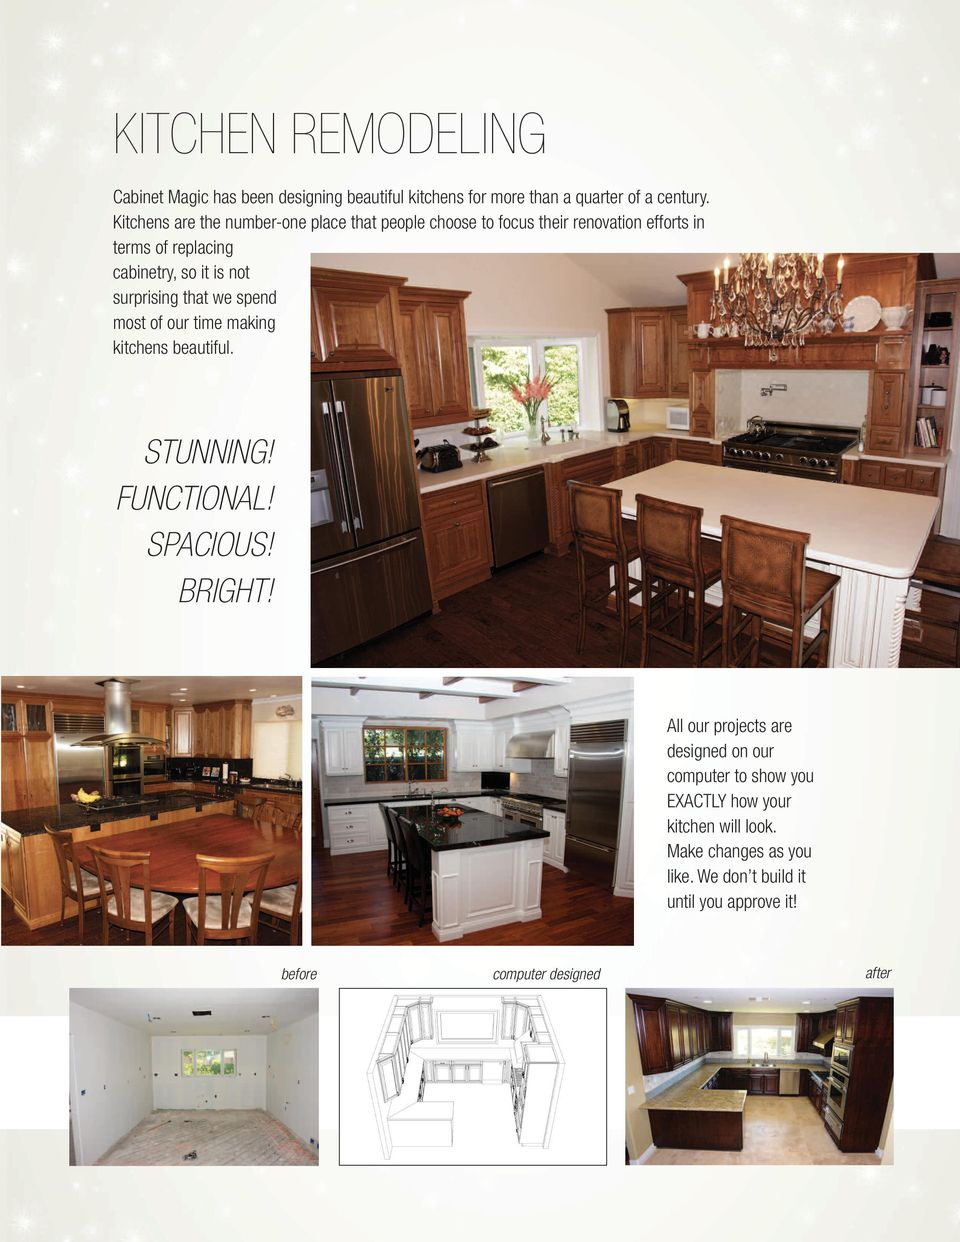 surprising that we spend most of our time making kitchens beautiful. STUNNING! FUNCTIONAL! SPACIOUS! BRIGHT!